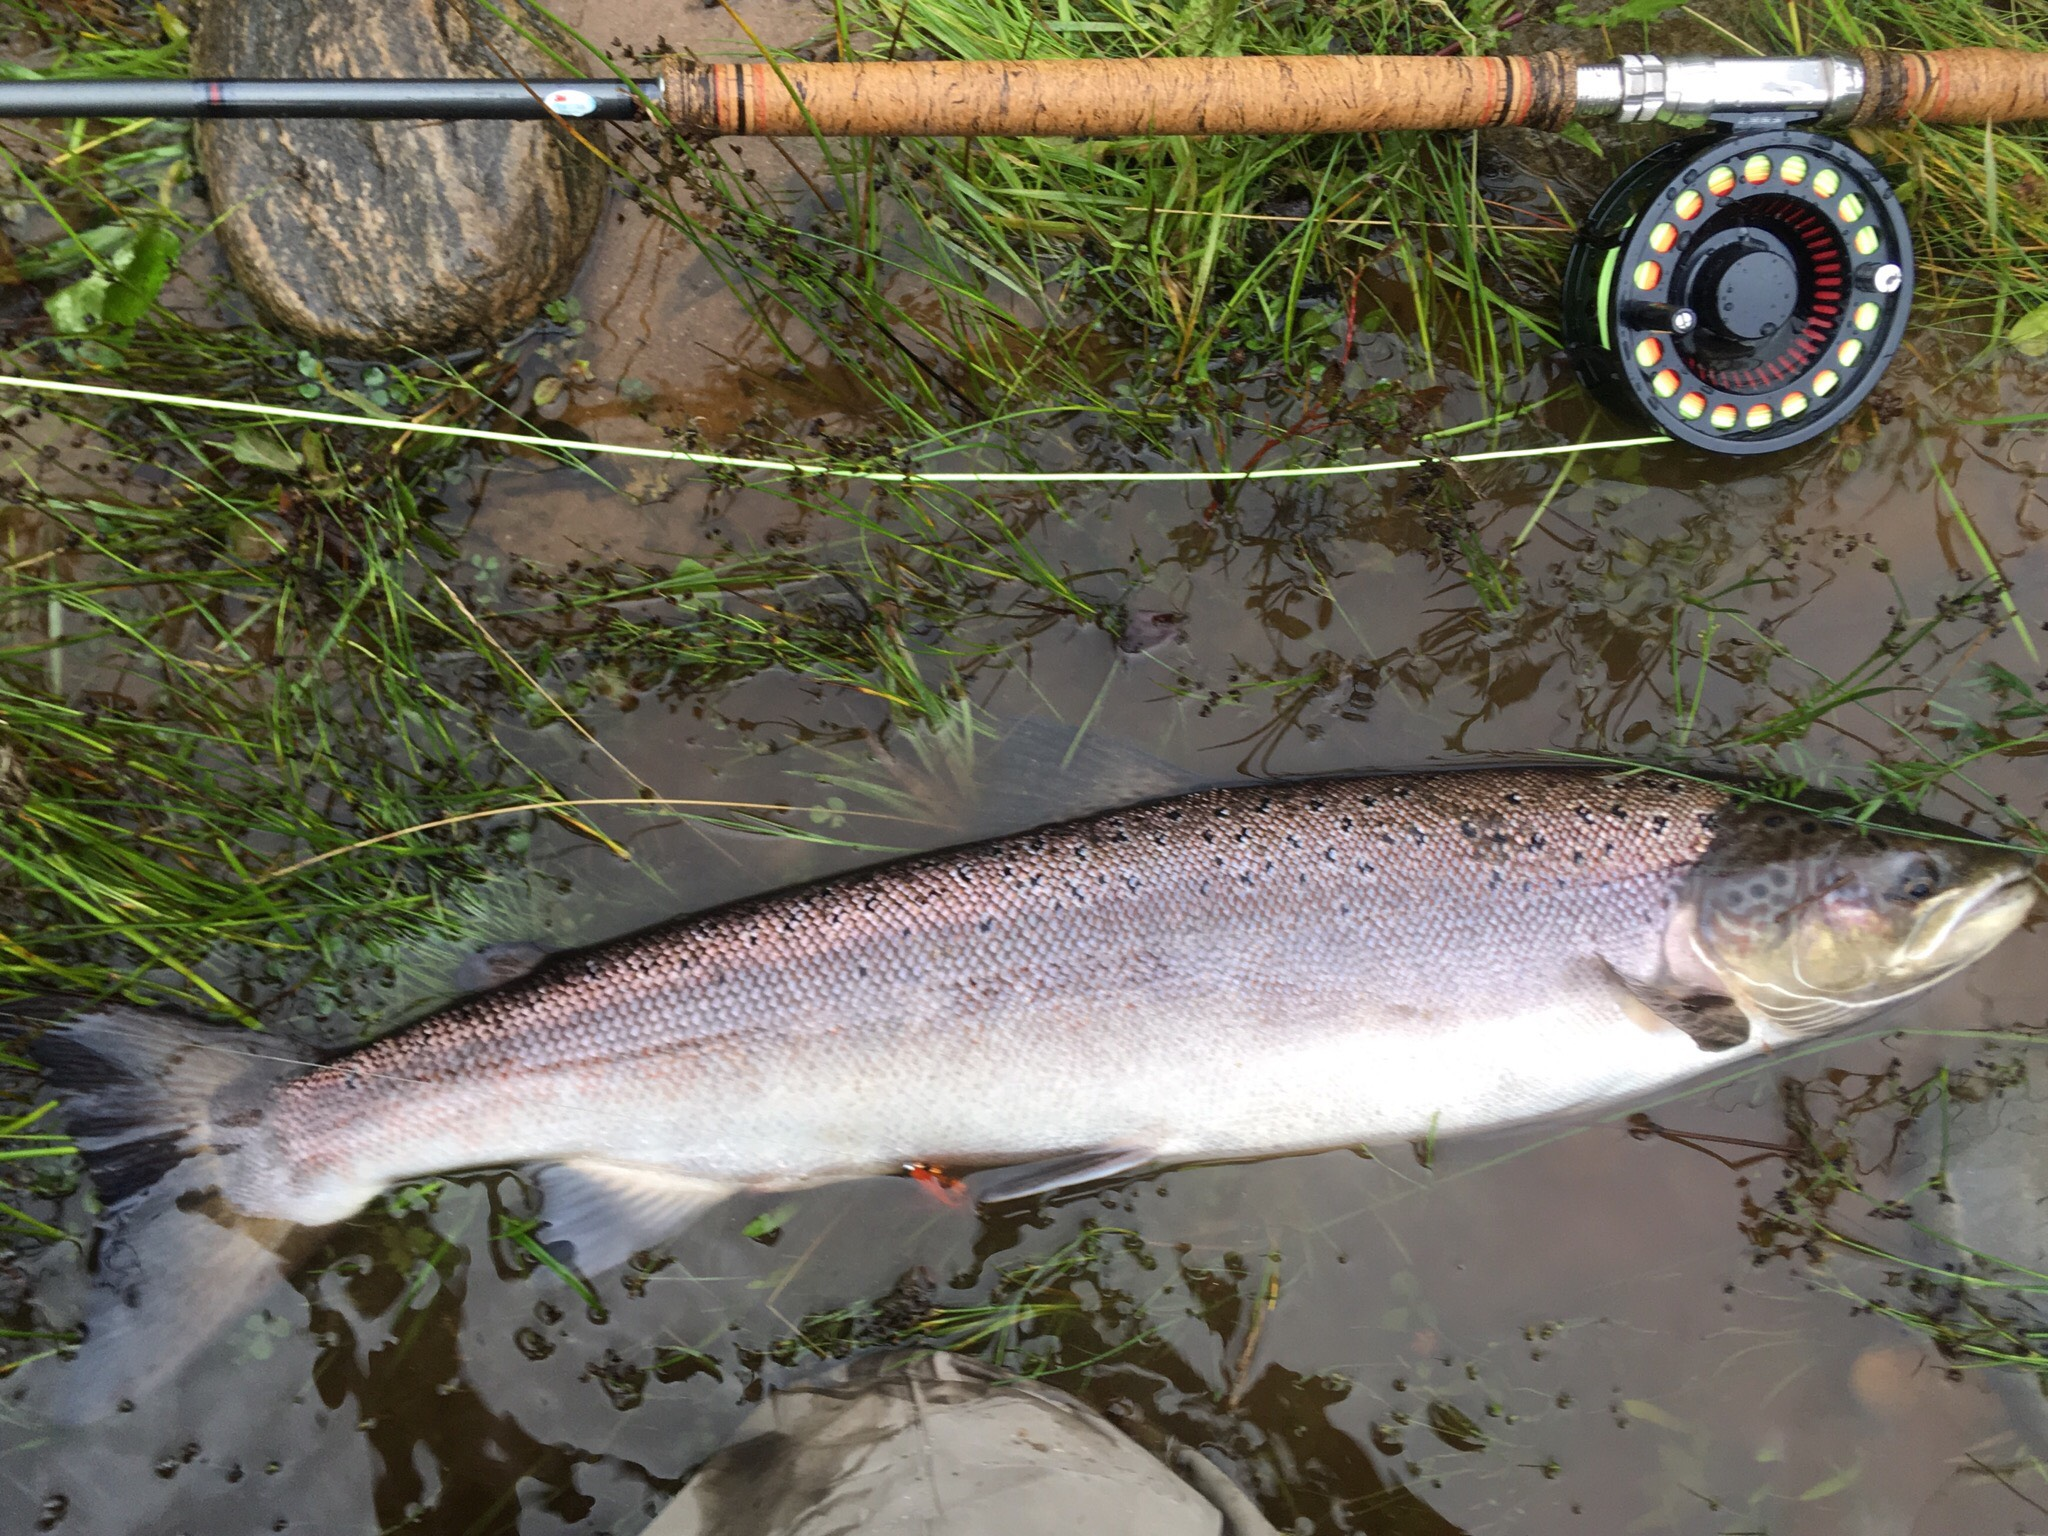 A slightly coloured Summer salmon of around 7 lbs. from Roehillock Pool on Altyre Estate, River Findhorn